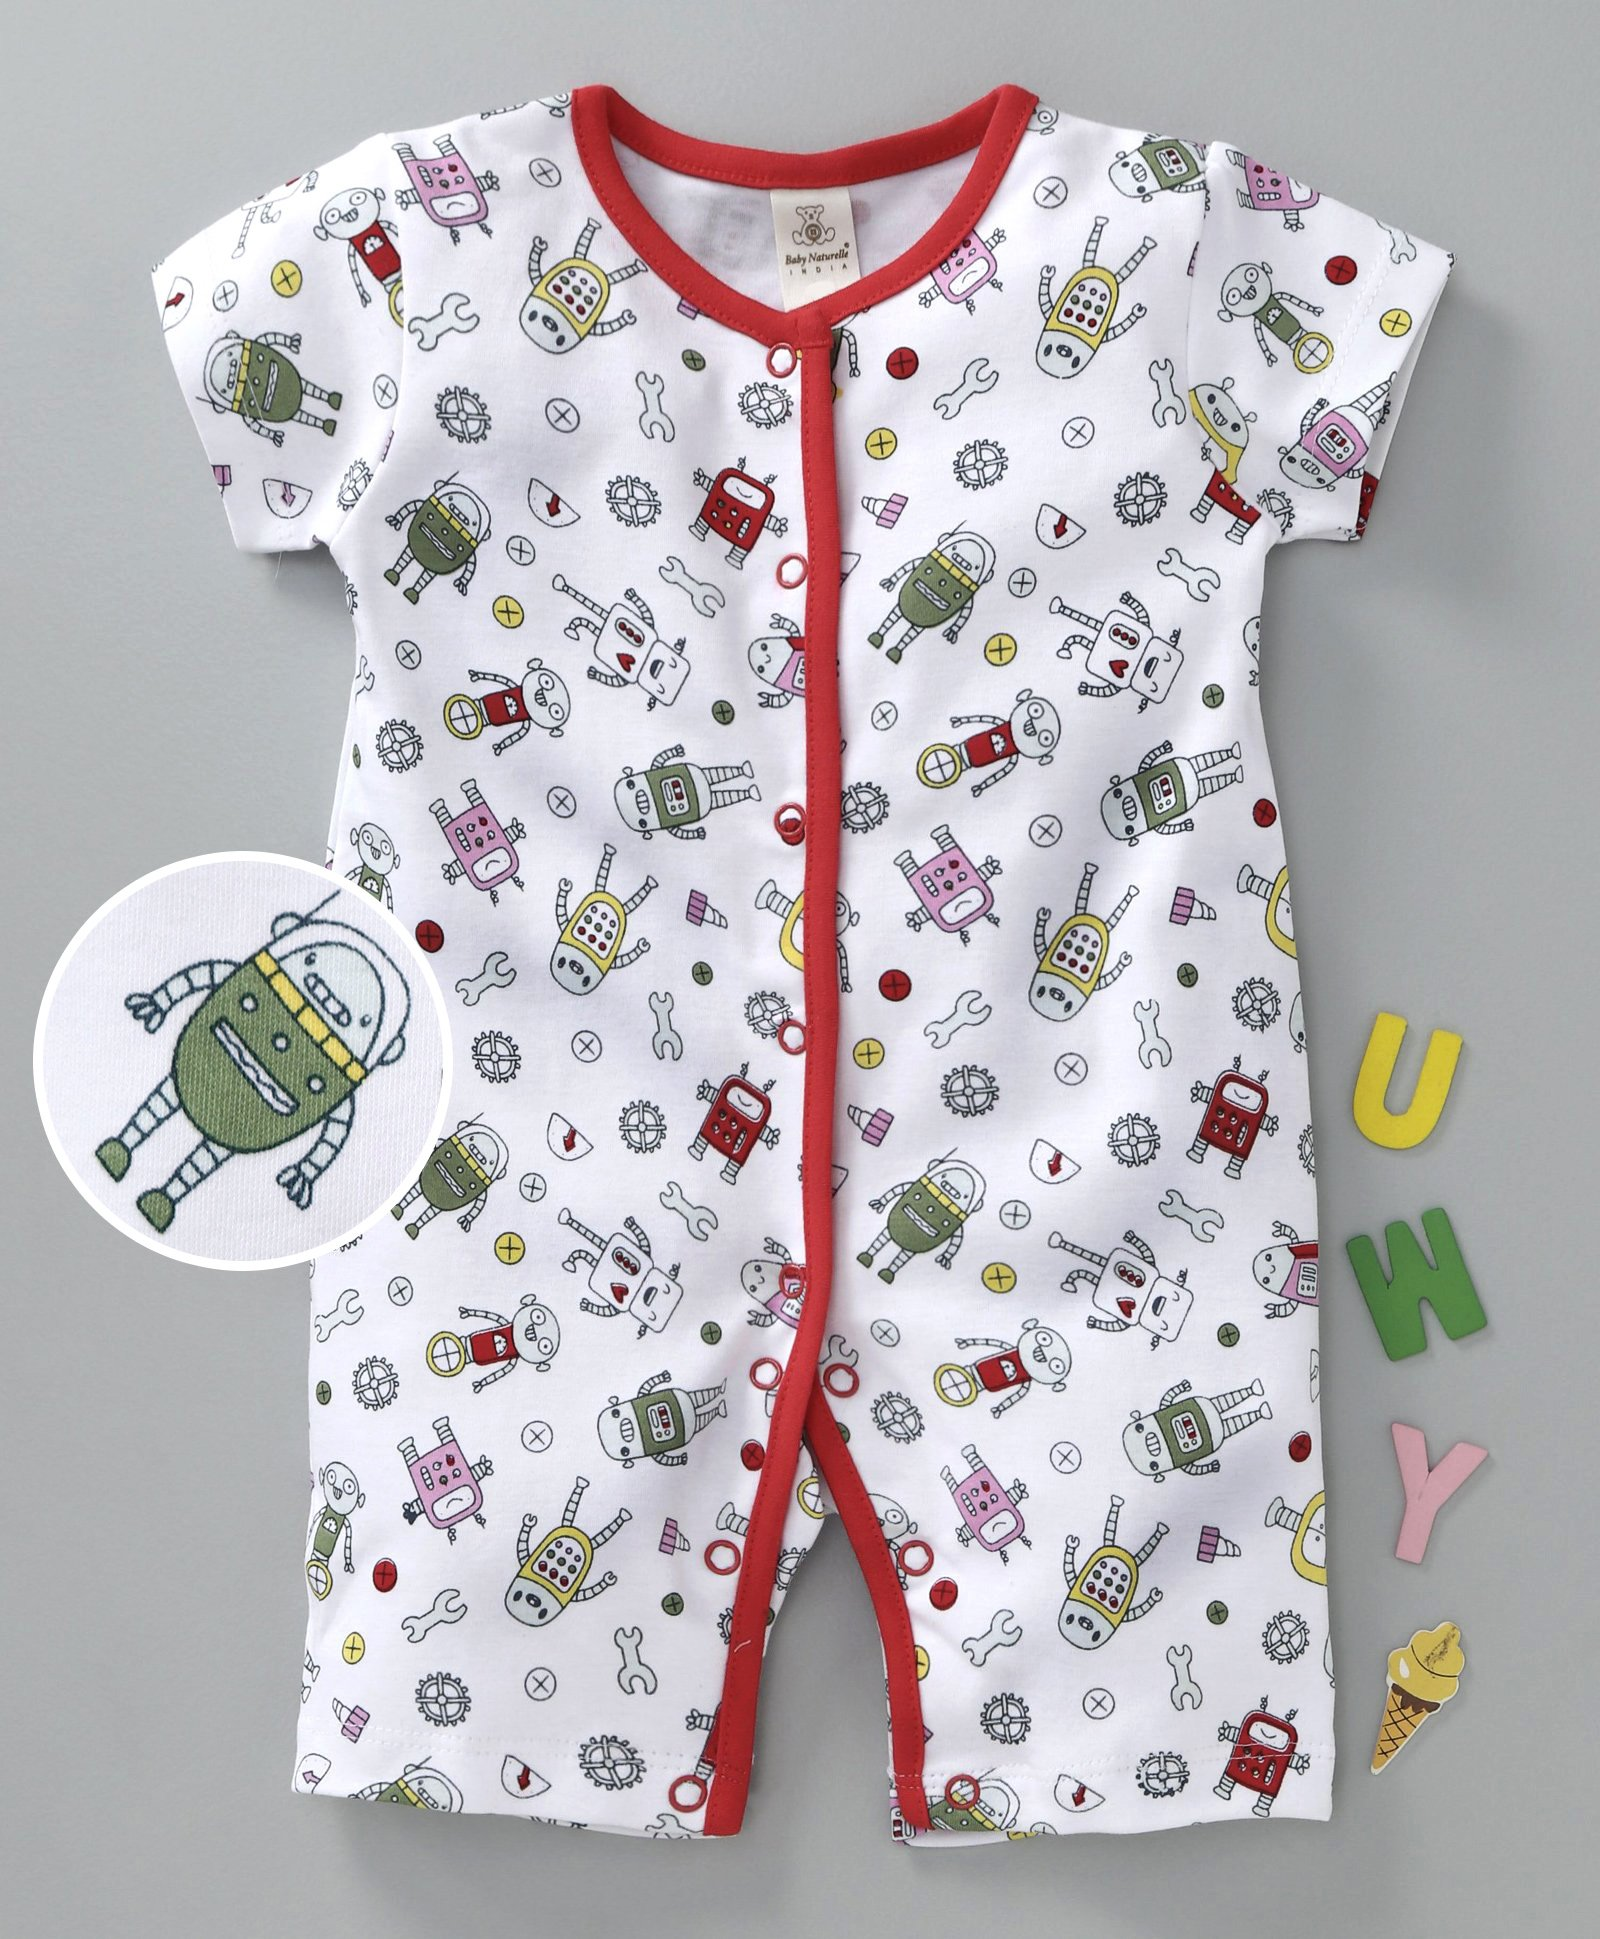 656d385eb20de Buy Baby Naturelle & Me Half Sleeves Romper Robot Print Red for Girls (6-12  Months) Online in India, Shop at FirstCry.com - 2513687